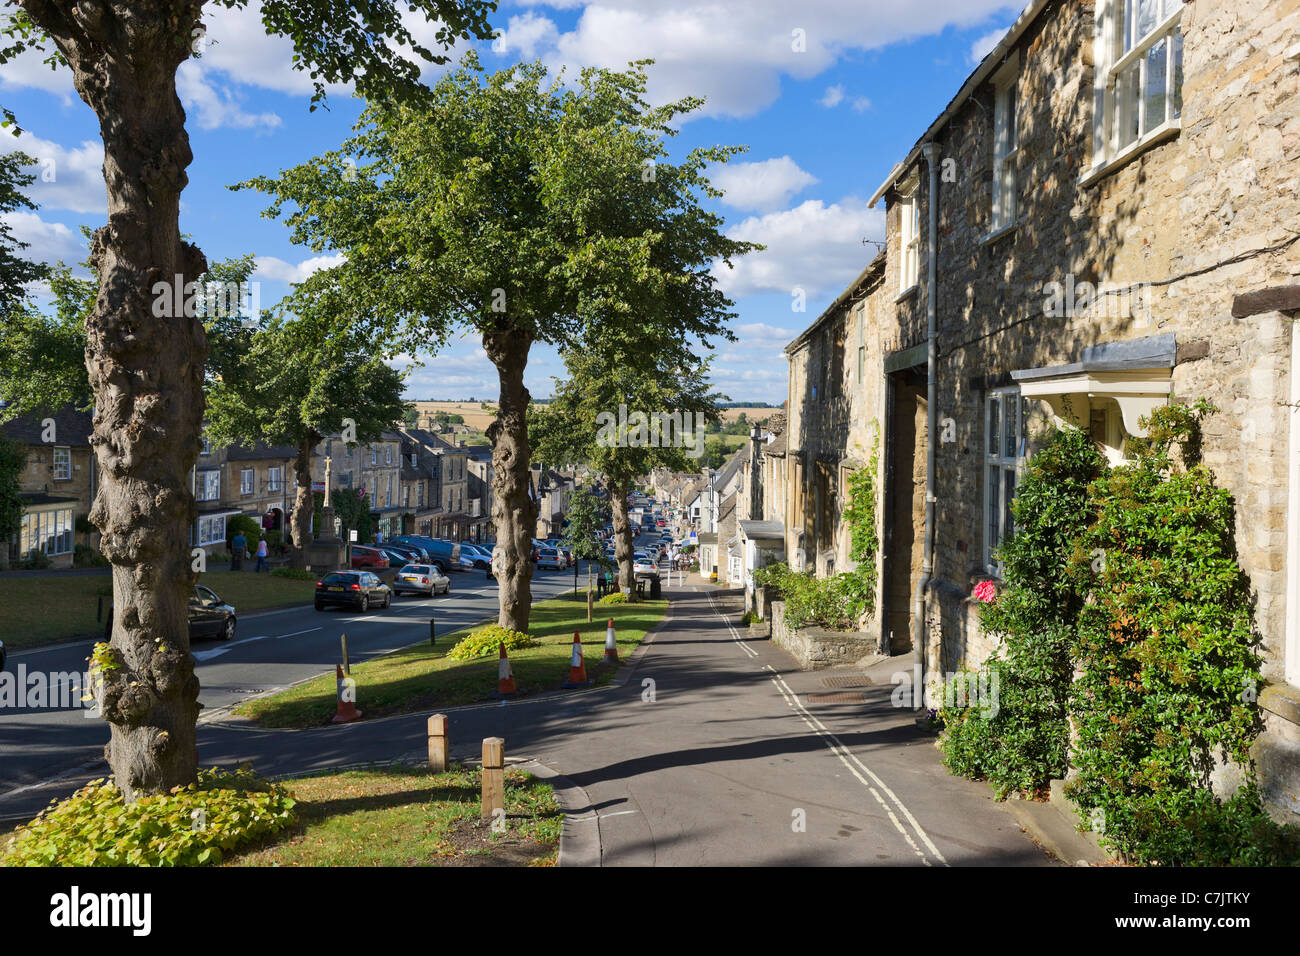 View down the Main Street in the Cotswold town of Burford, Oxfordshire, England, UK - Stock Image